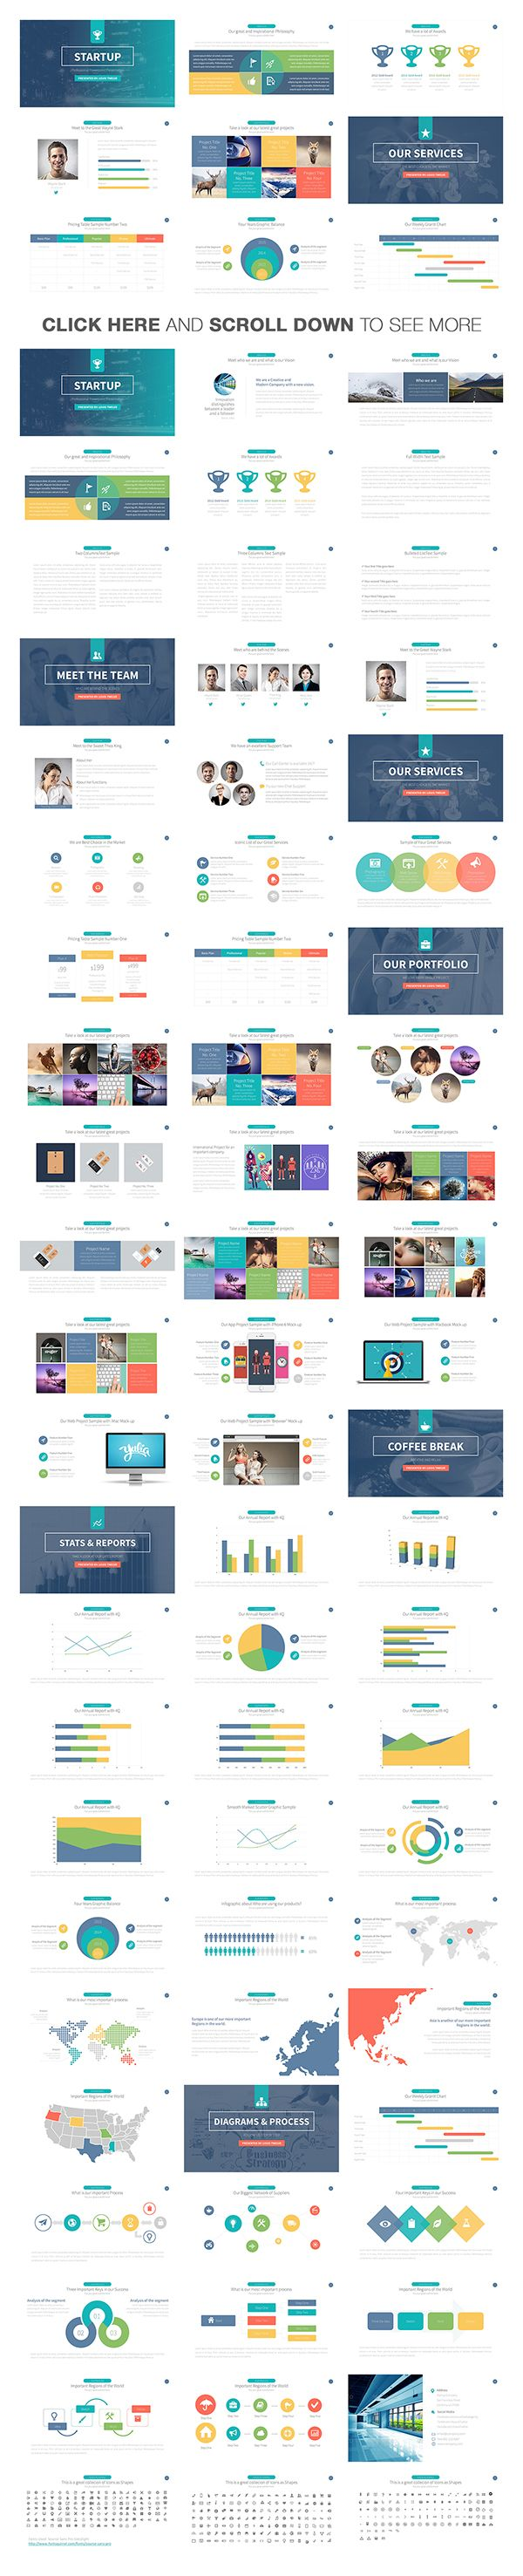 Startup Powerpoint Presentation Template on Behance